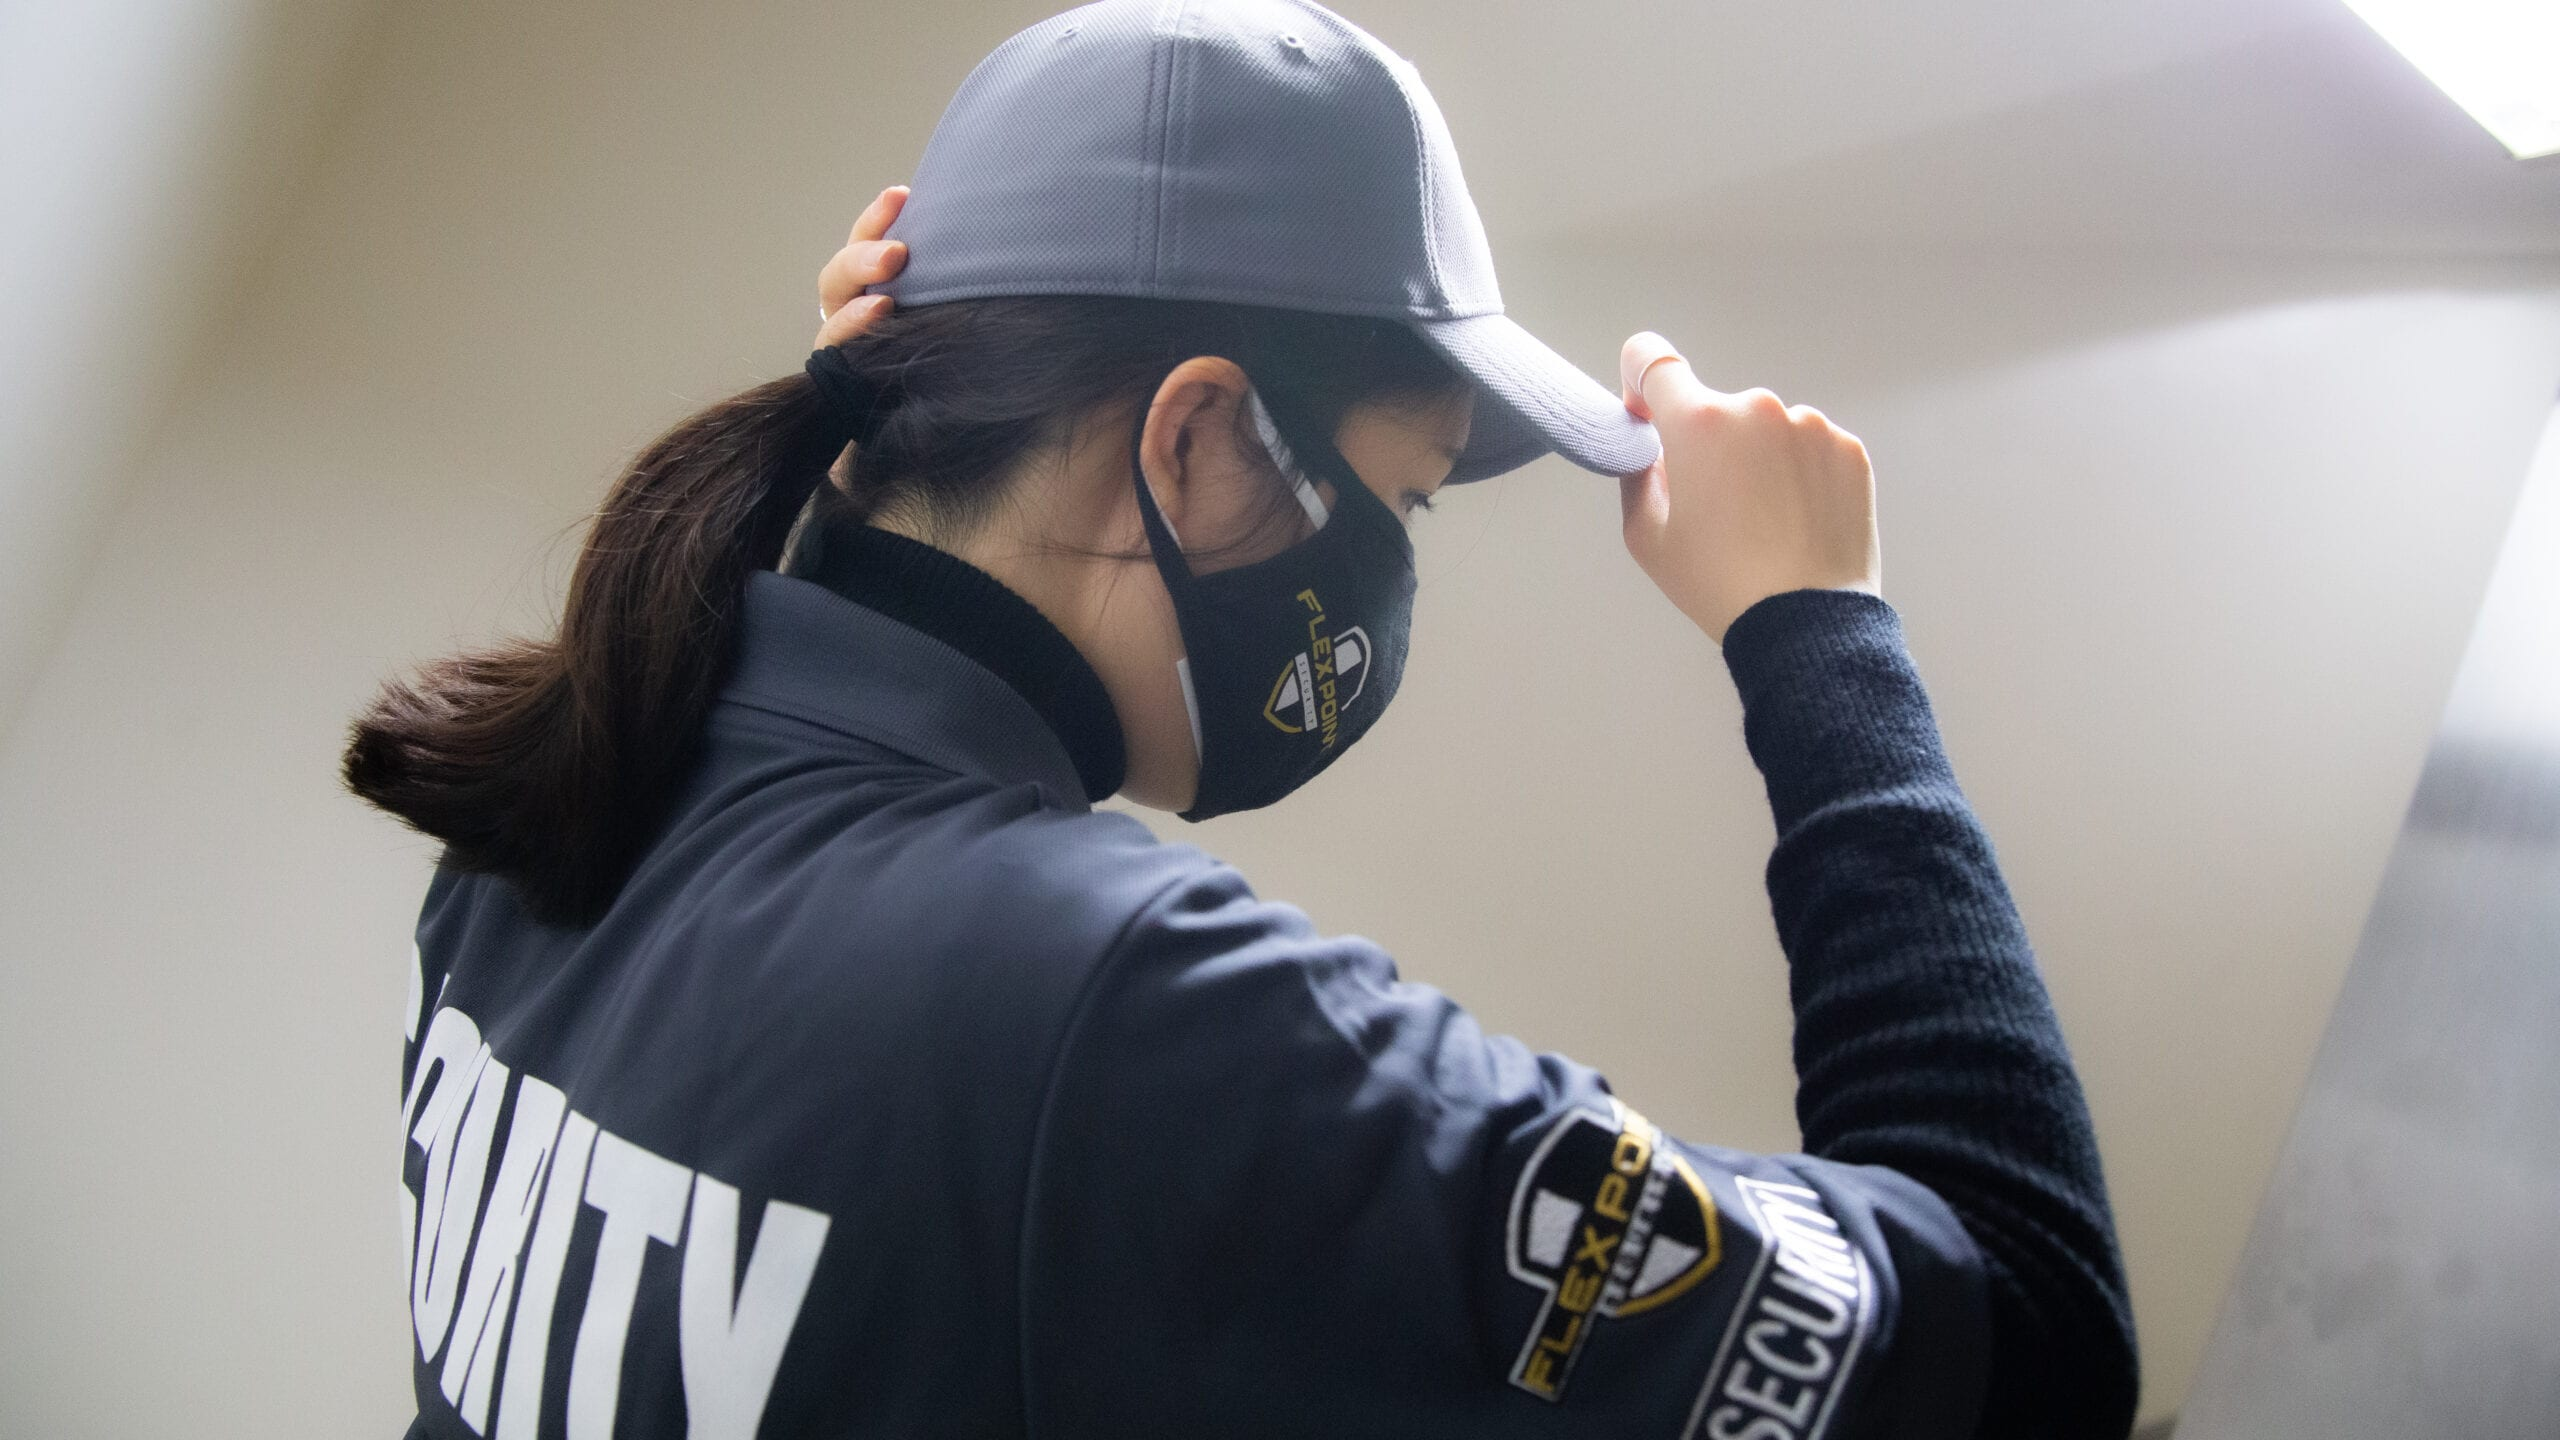 Female Flex Point Security guard with branded clothing on adjusting her hat